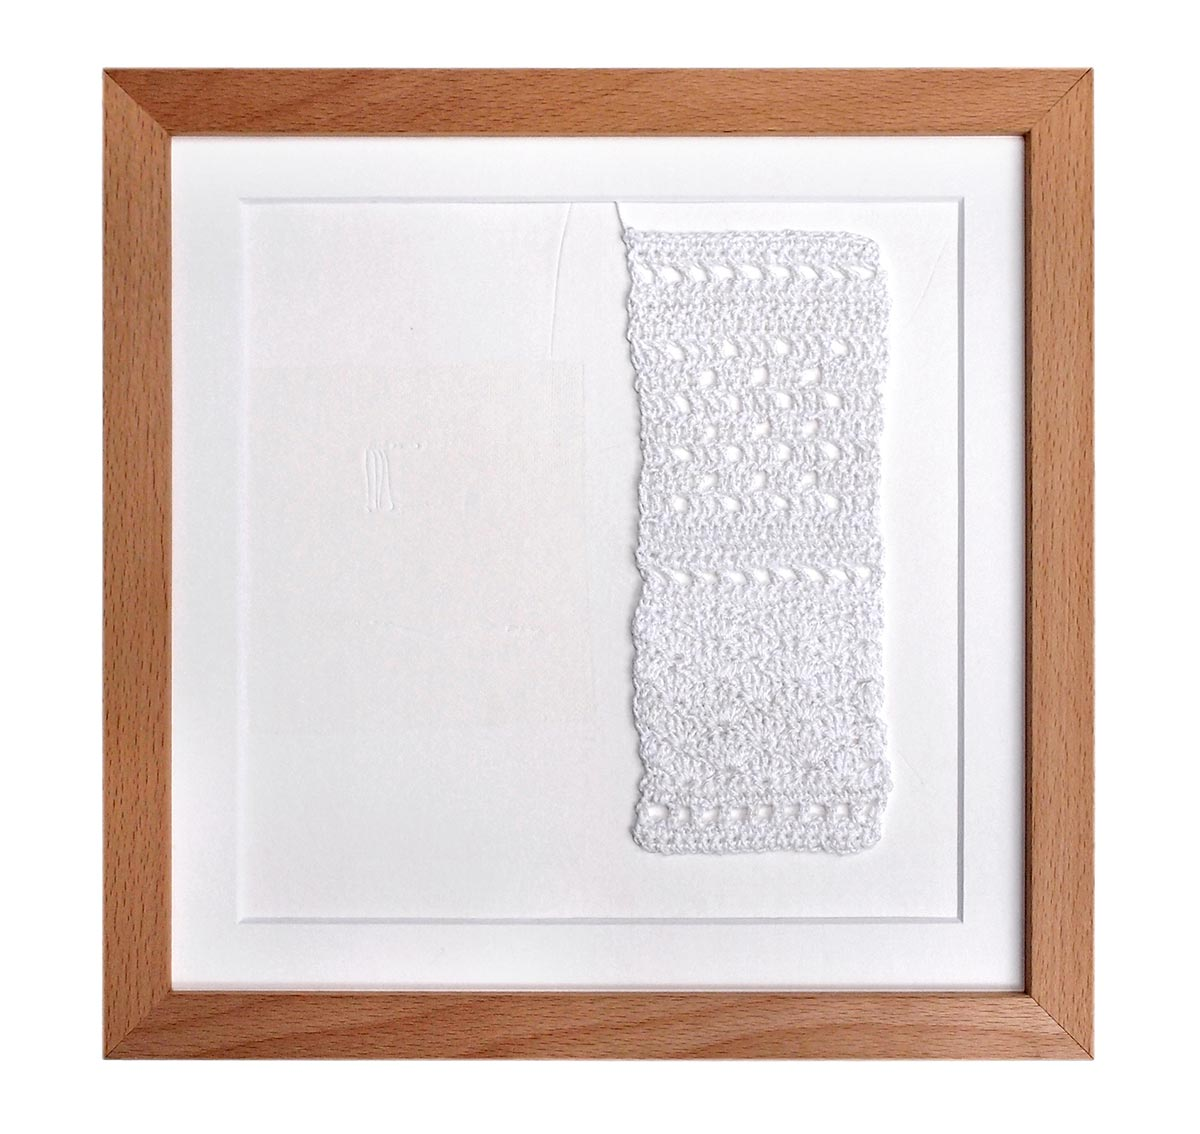 STRUCTURE WITH HOLES – 2016 | Size: 25 x 25 cms. Materials: Crochet cotton and paper. Techniques: Crochet and embossing. Photo: Ulrike Sauer